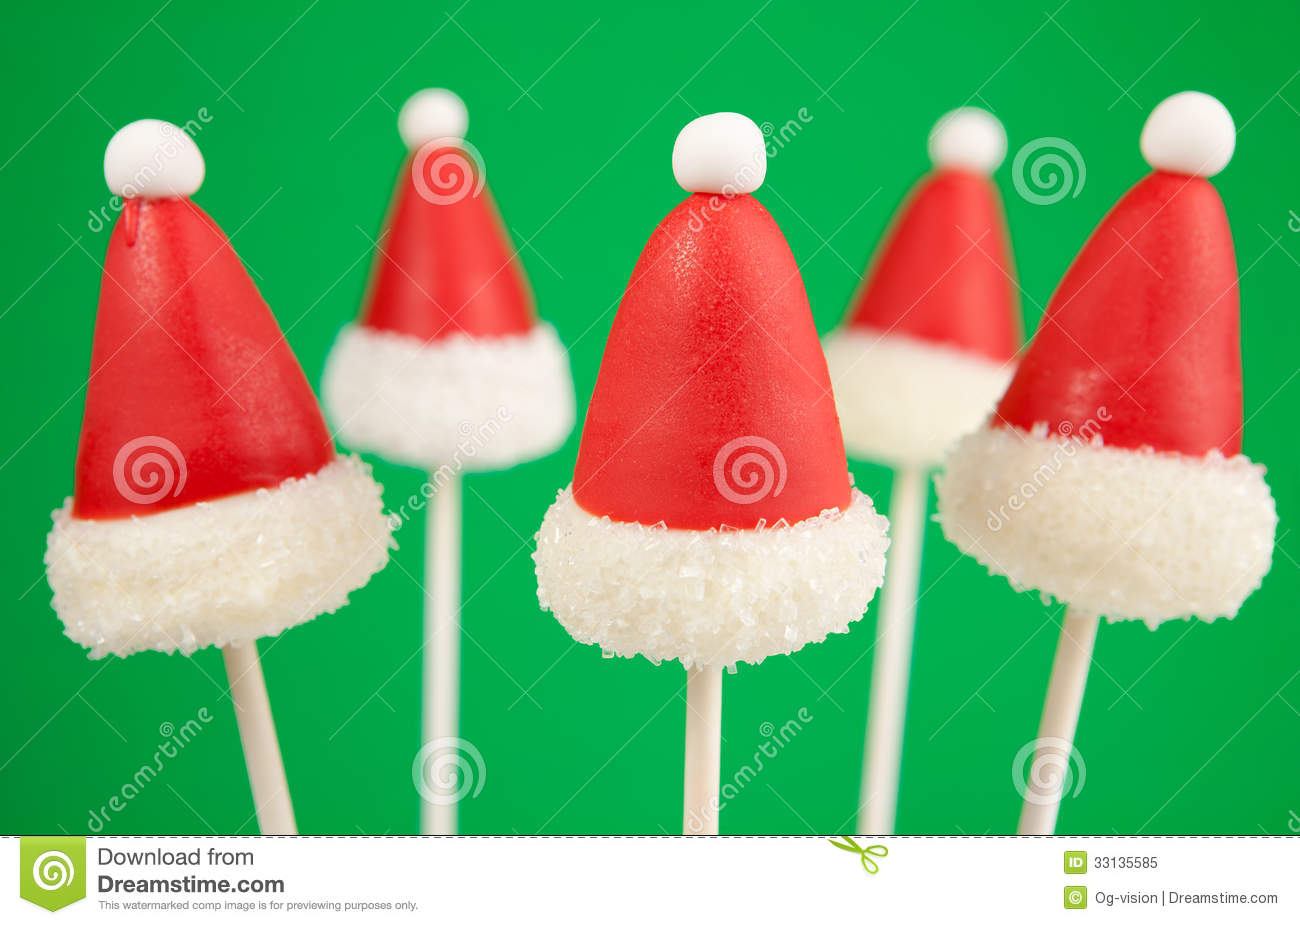 Decorating Cake Pops Fondant : Christmas Cake Pops Royalty Free Stock Photo - Image: 33135585